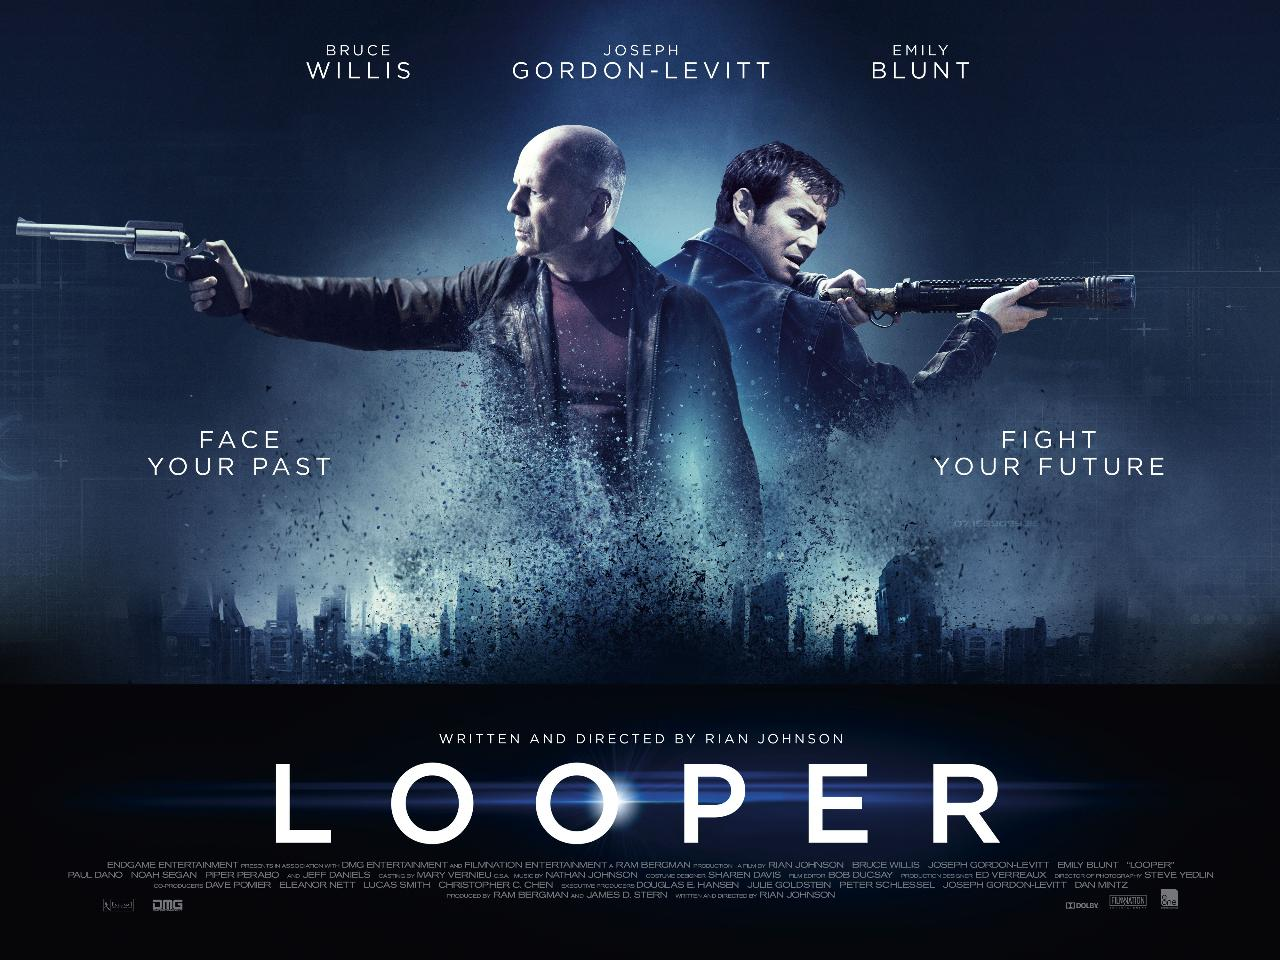 New Looper Poster Released